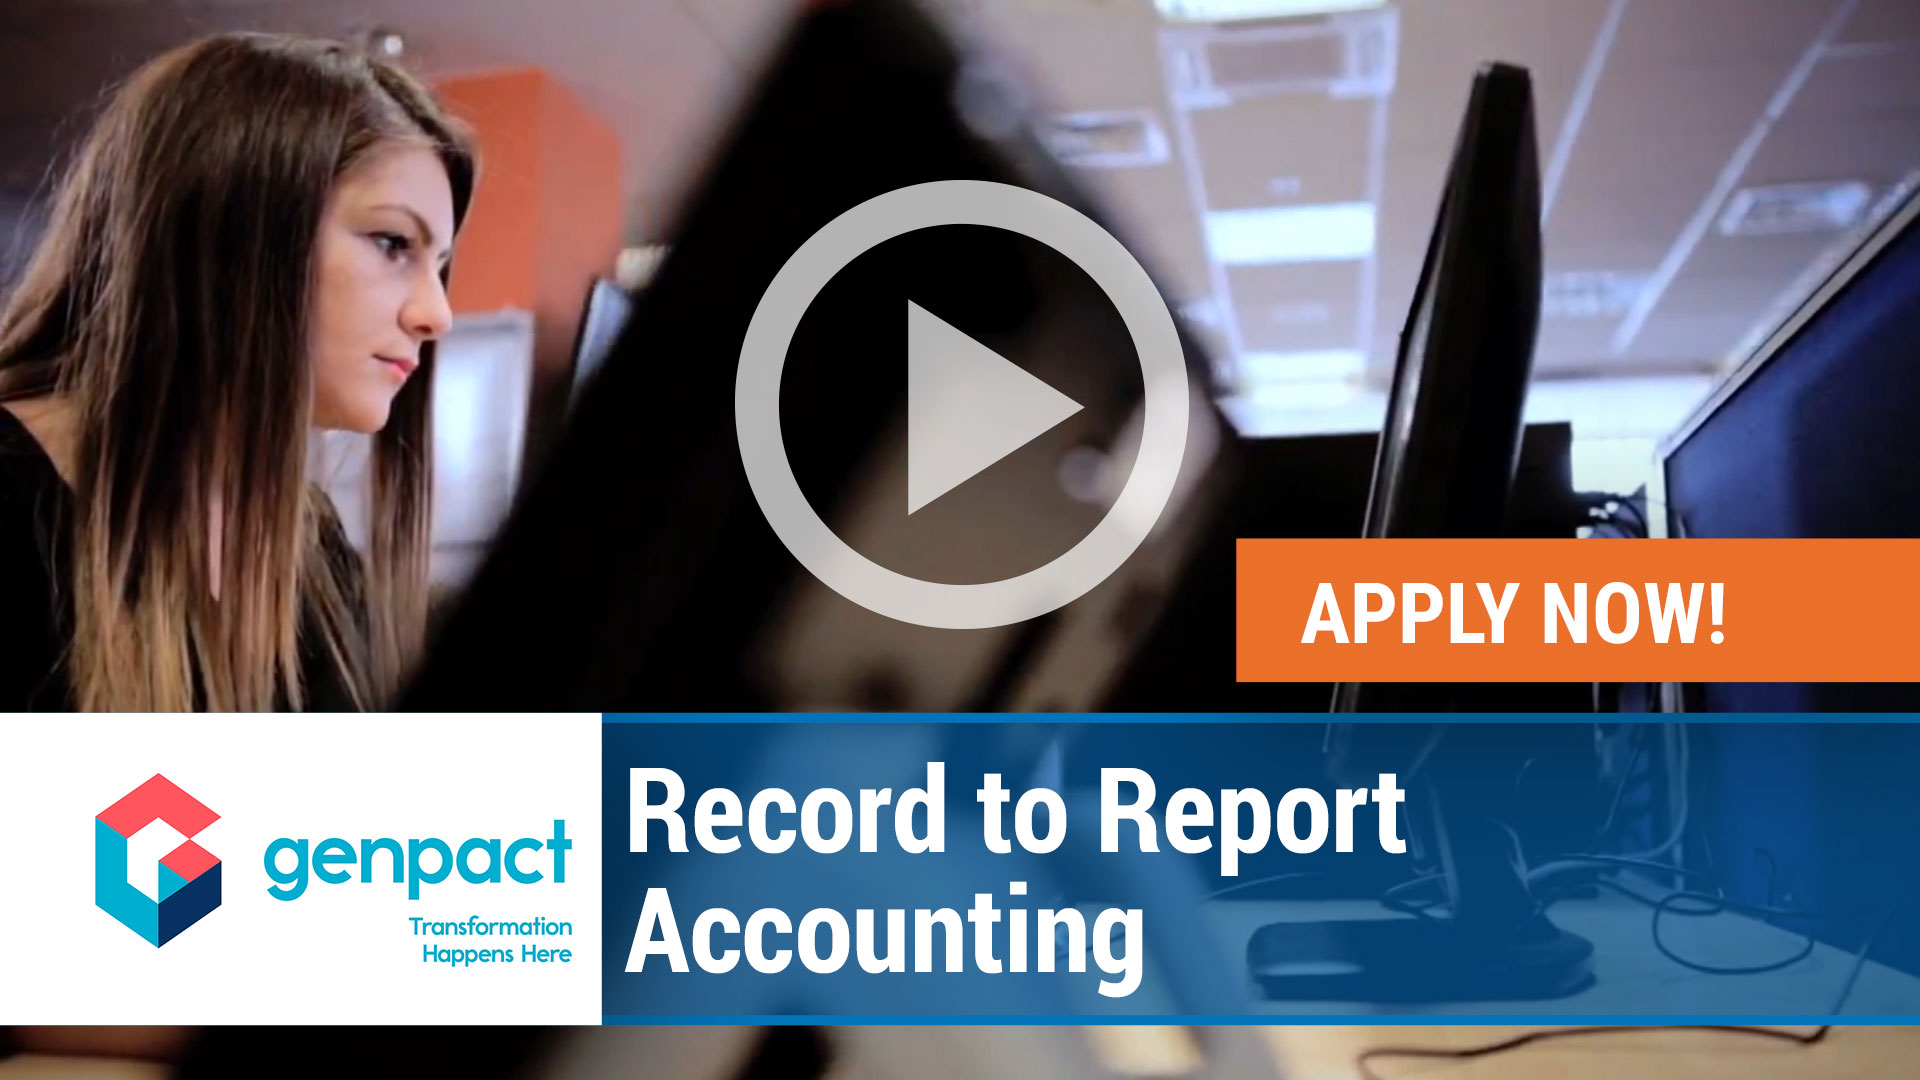 Watch our careers video for available job opening Record to Report Accounting in Wilkes Barre, Pennsylvania